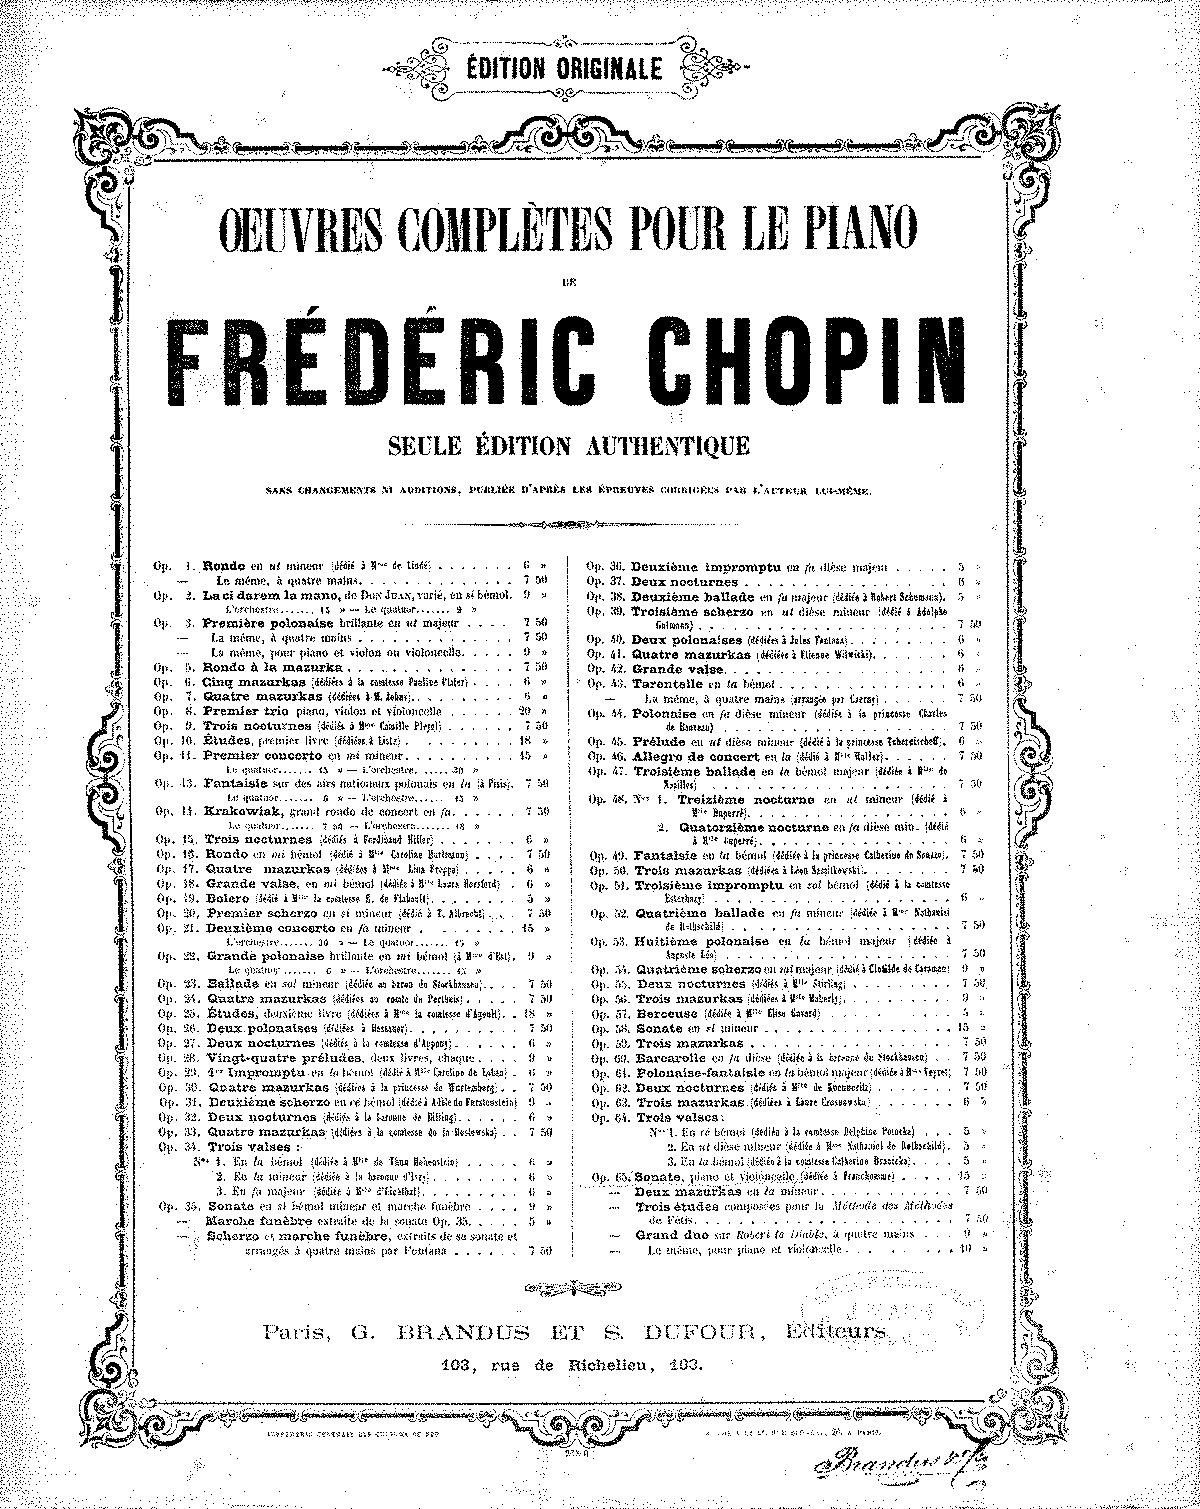 Chopin - Cello Sonata - Brandus.pdf